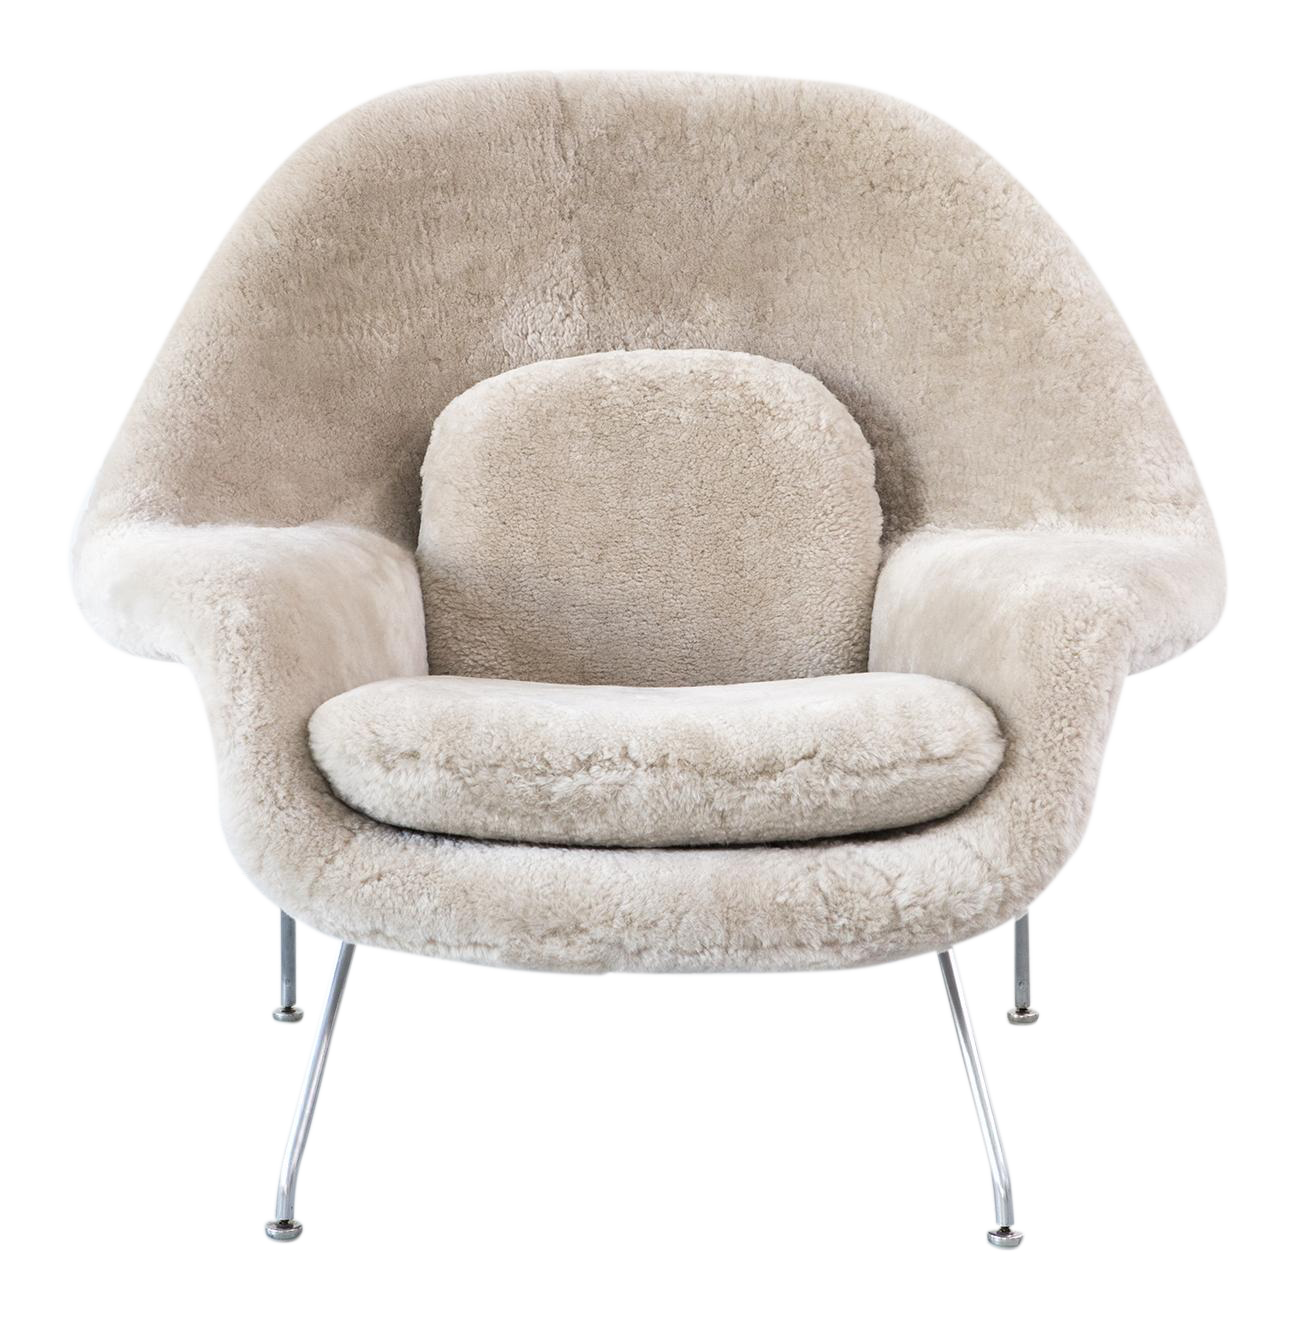 Eero Saarinen for Knoll Womb Chair Reupholstered in Shearling | Chairish